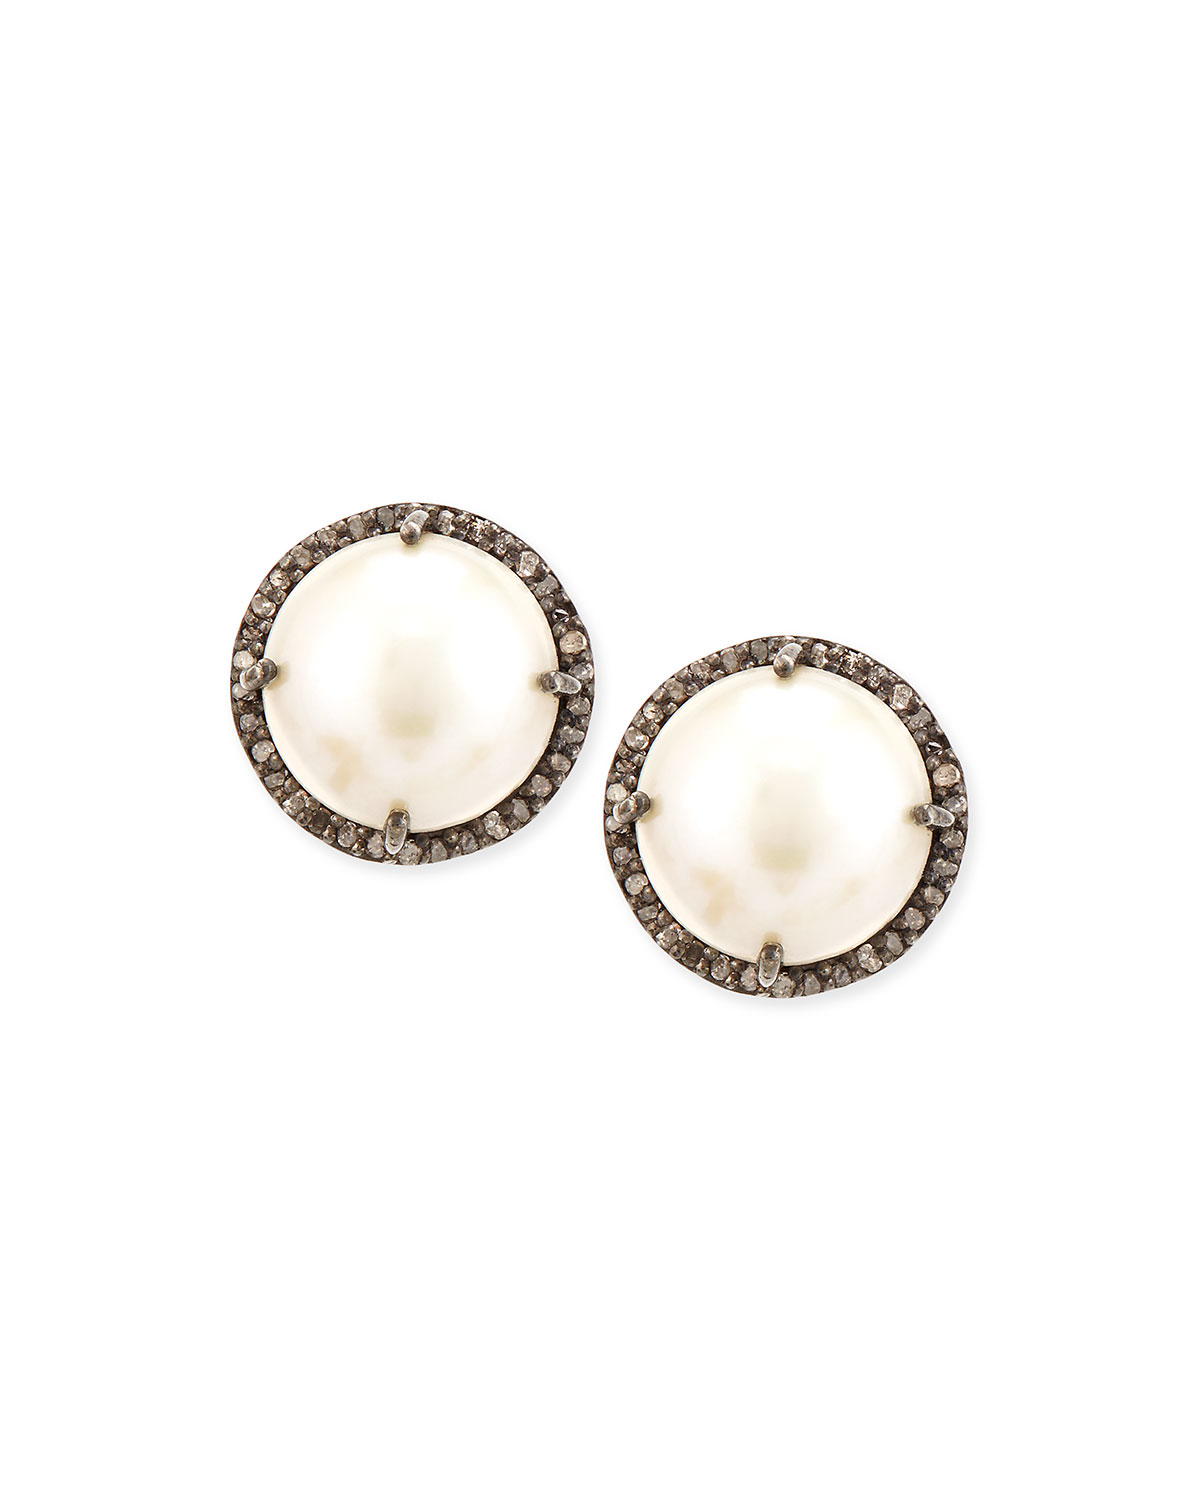 Gallery Previously Sold At: Neiman Marcus · Women's Pearl Jewelry Women's Diamond  Earrings